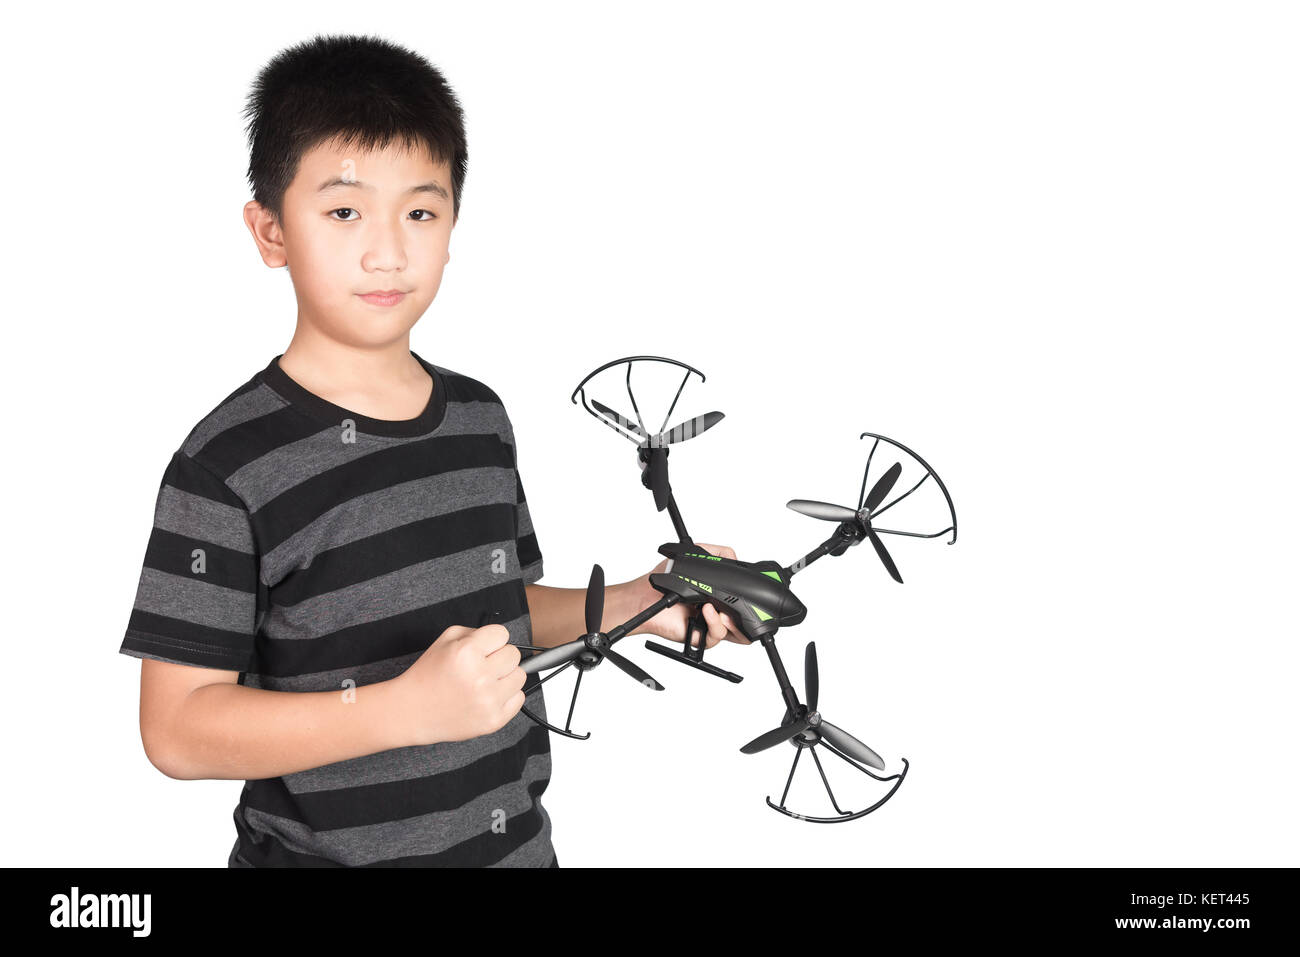 Successful happy and attractive Asian boy holding hexacopter drone and punching the air with his fist, isolated - Stock Image